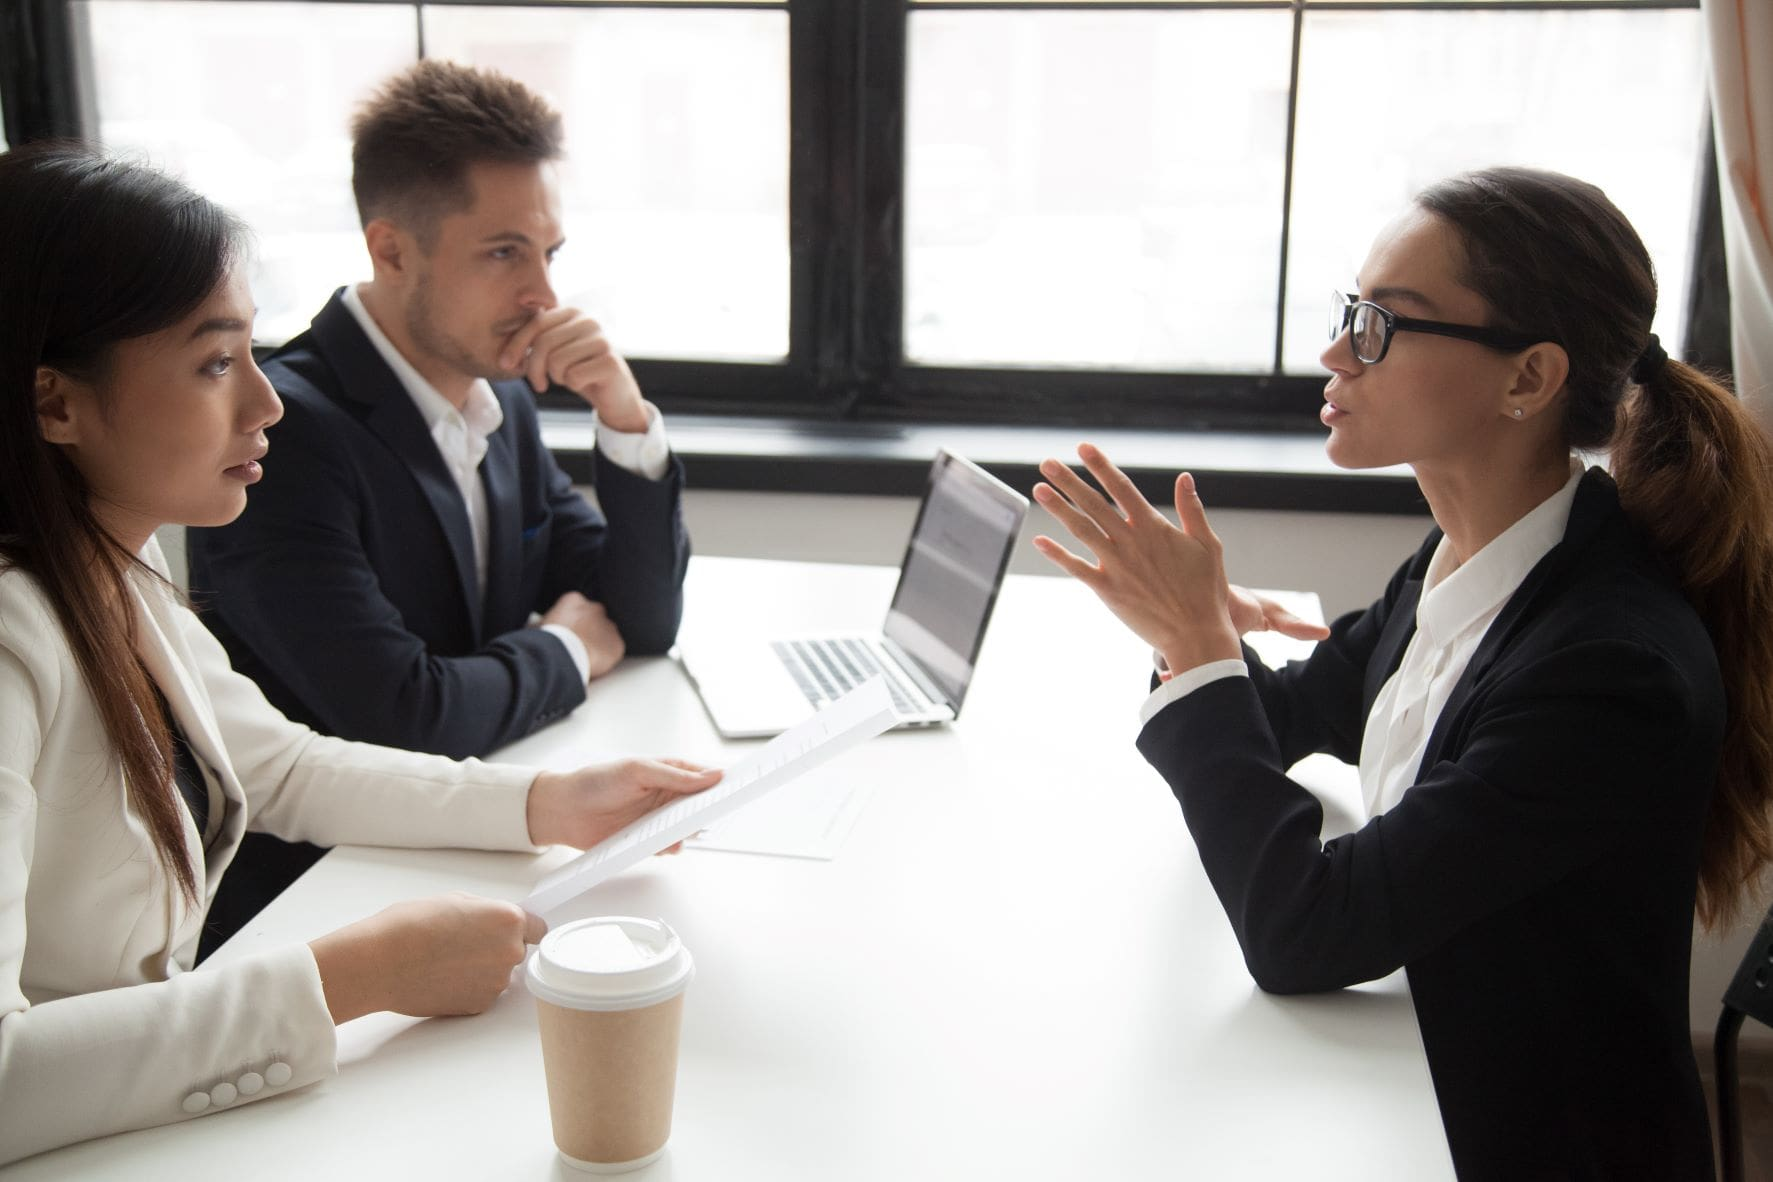 confident-applicant-being-judged-by-interviewing-hr-managers